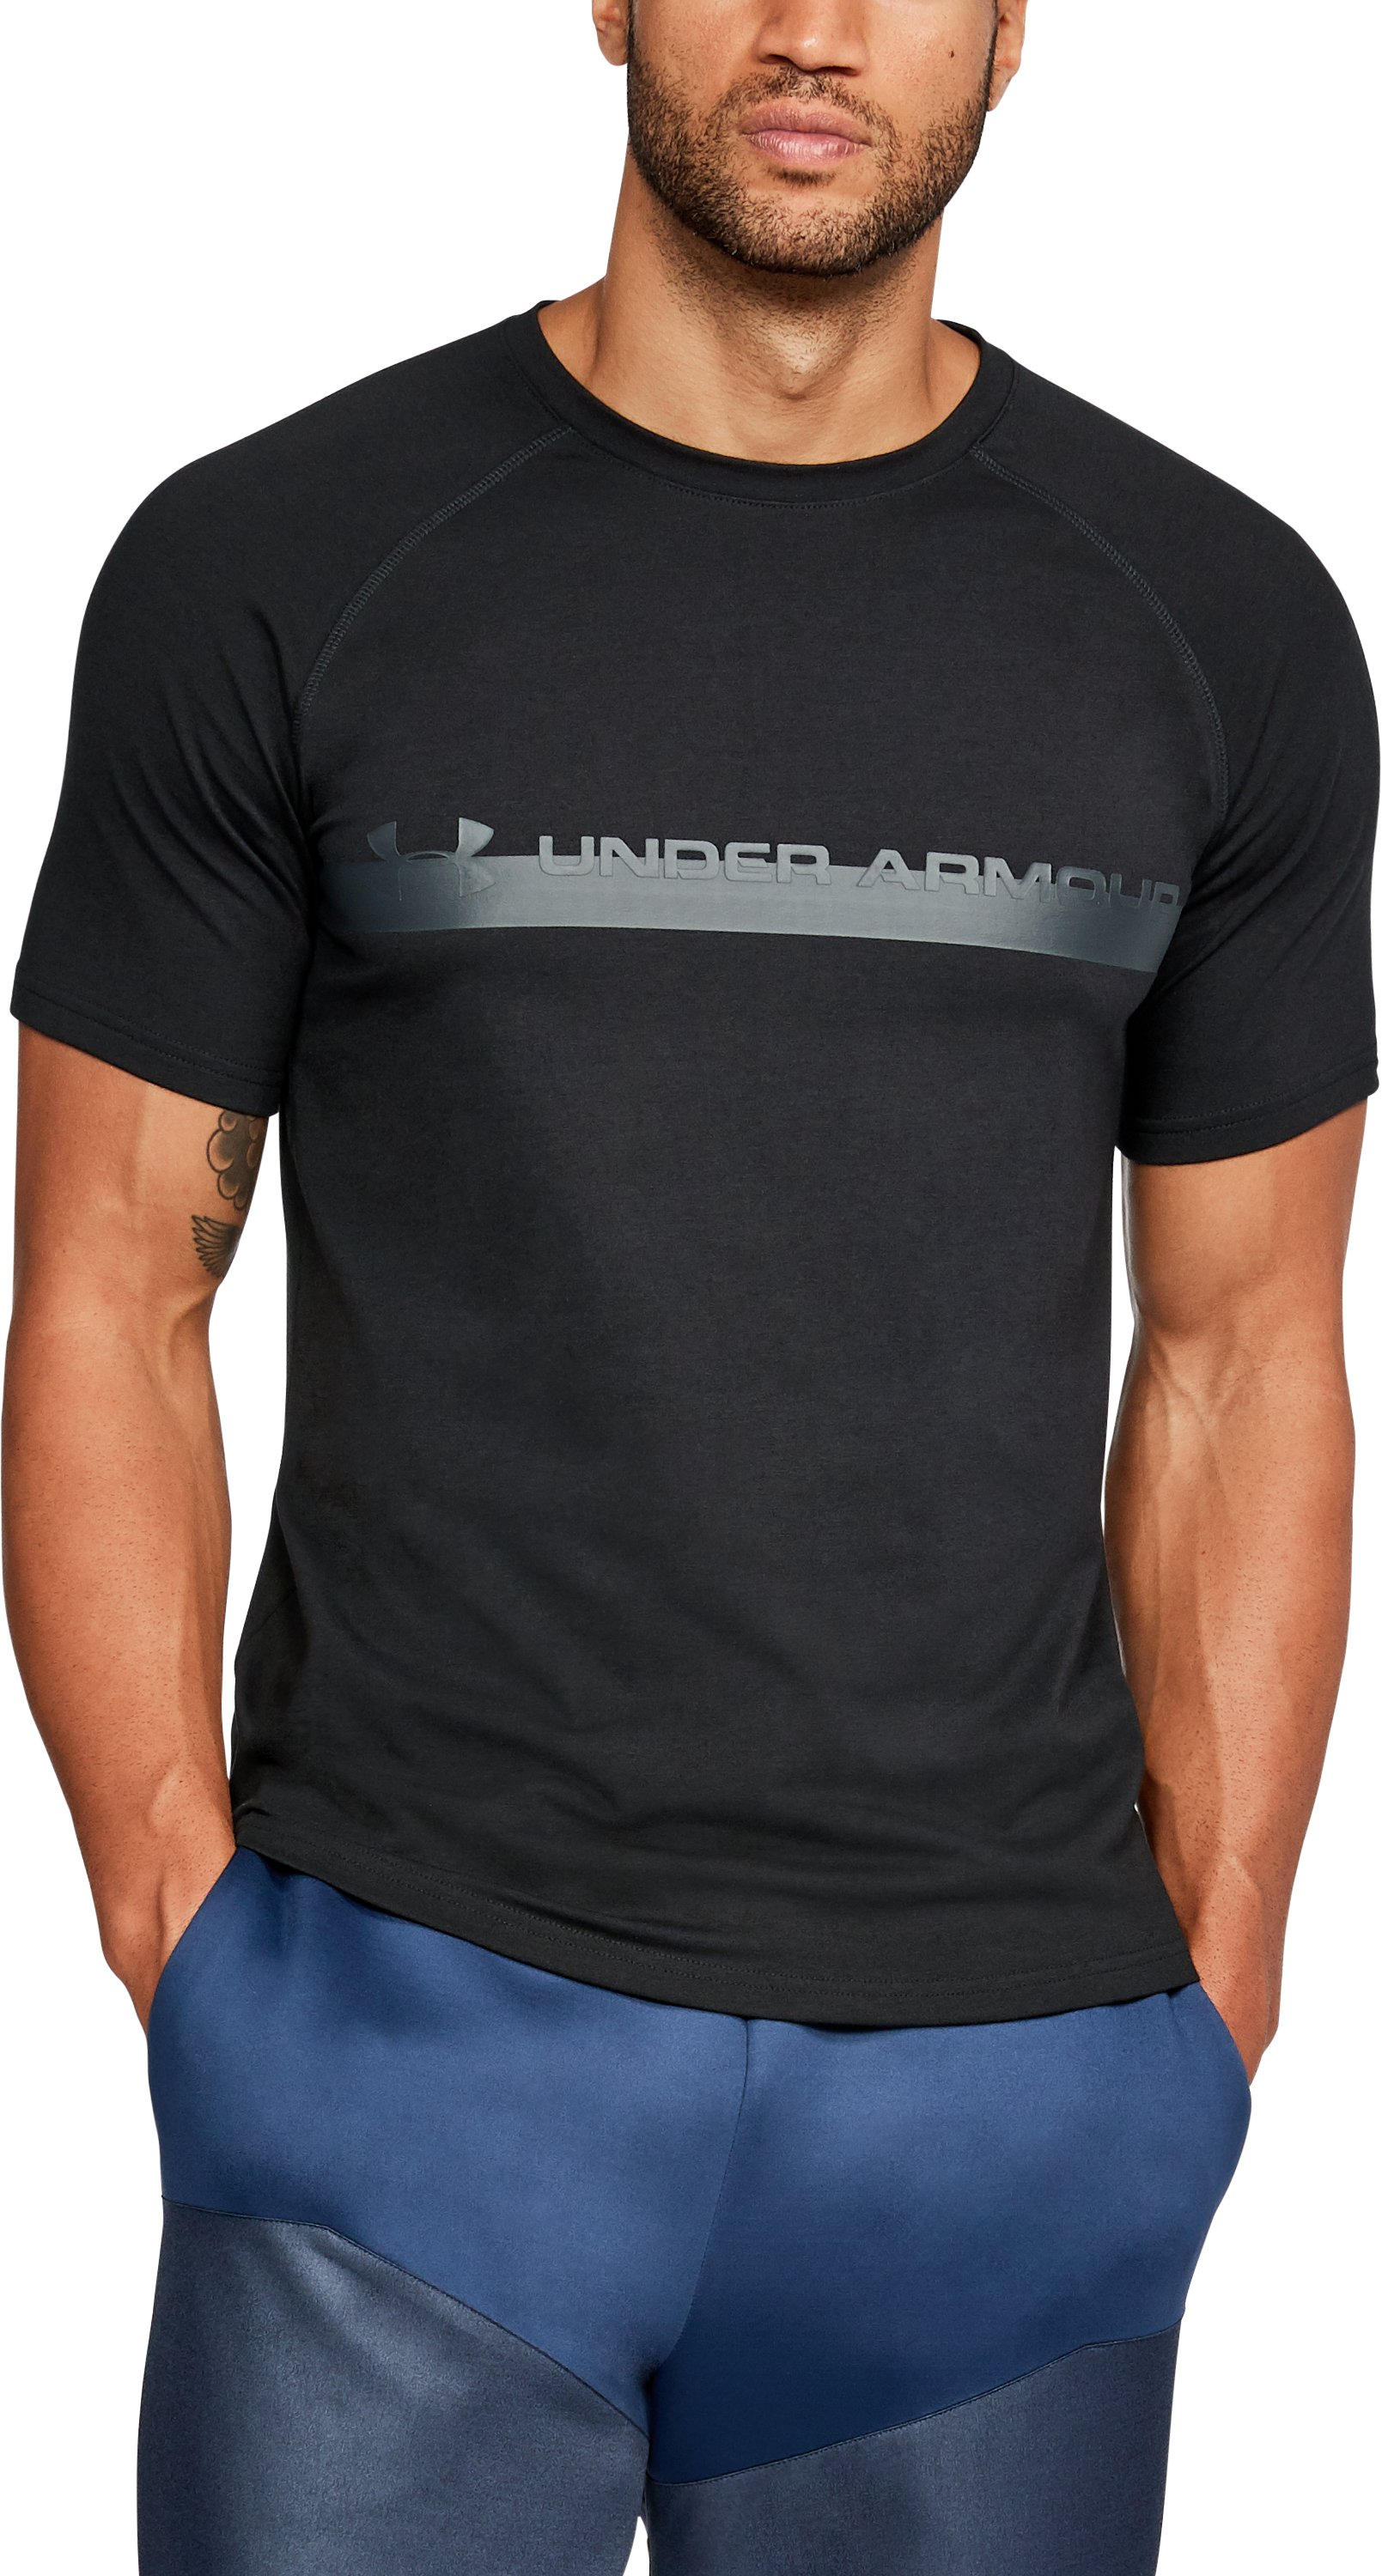 kids graphic t-shirts  Men's UA Unstoppable Graphic T-Shirt Length is a tad long        Love UA....Soft and comfortable....Good looking shirt by Under Armour.